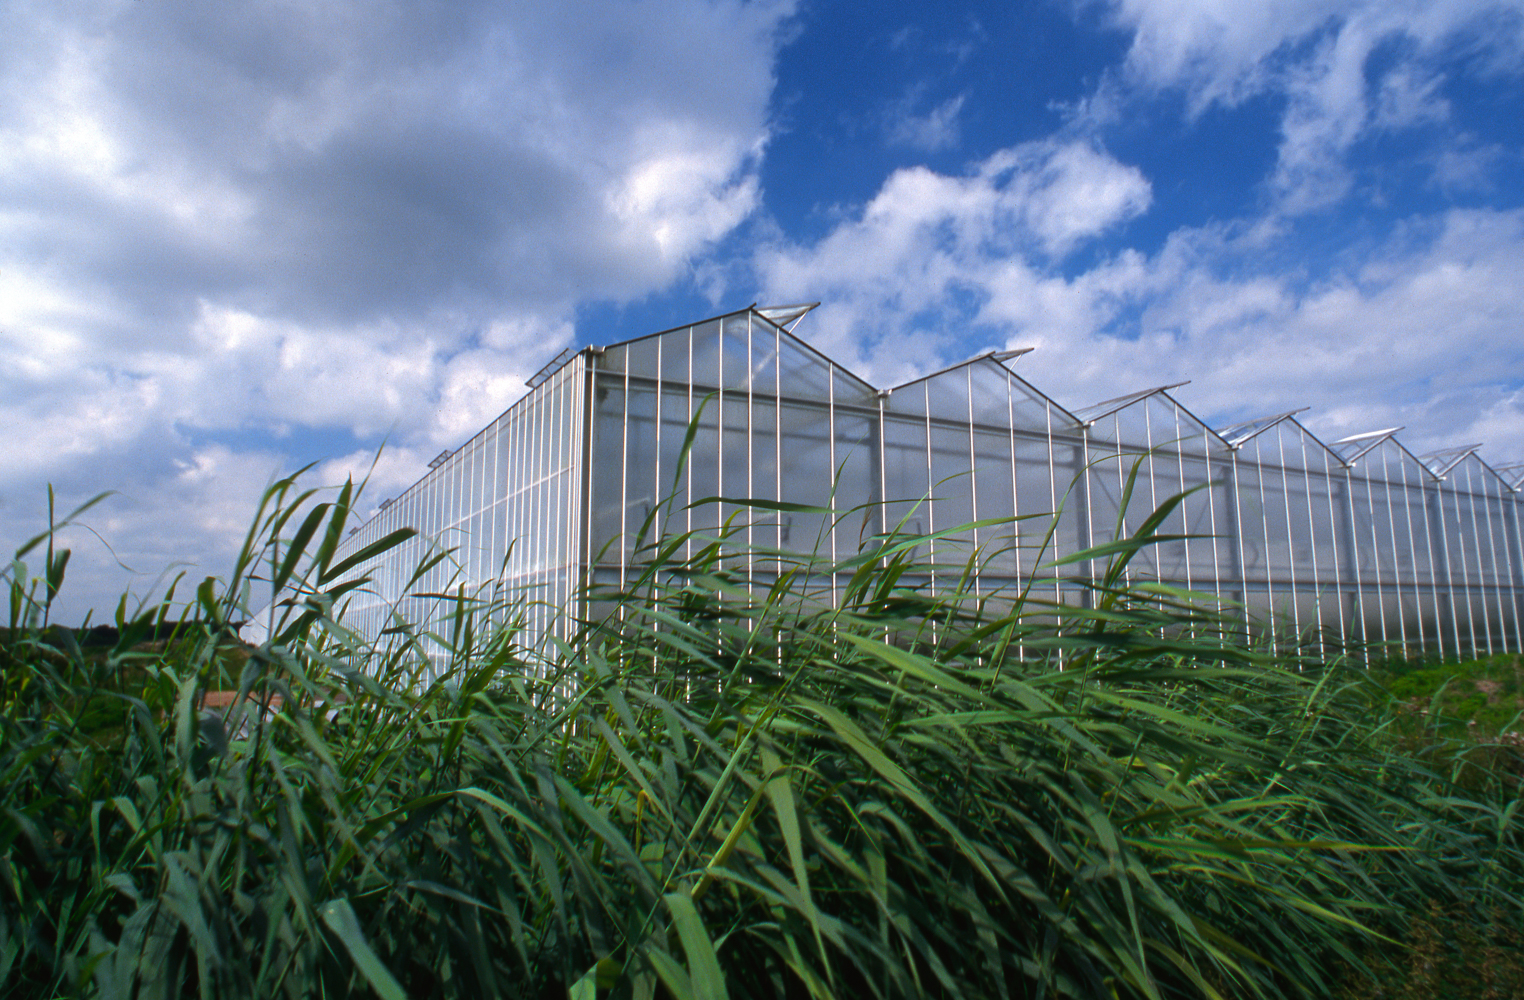 Compared to outdoor farming, greenhouses in the Netherlands have reduced water use for key crops by up to 90% and reduced chemical use by 97%.